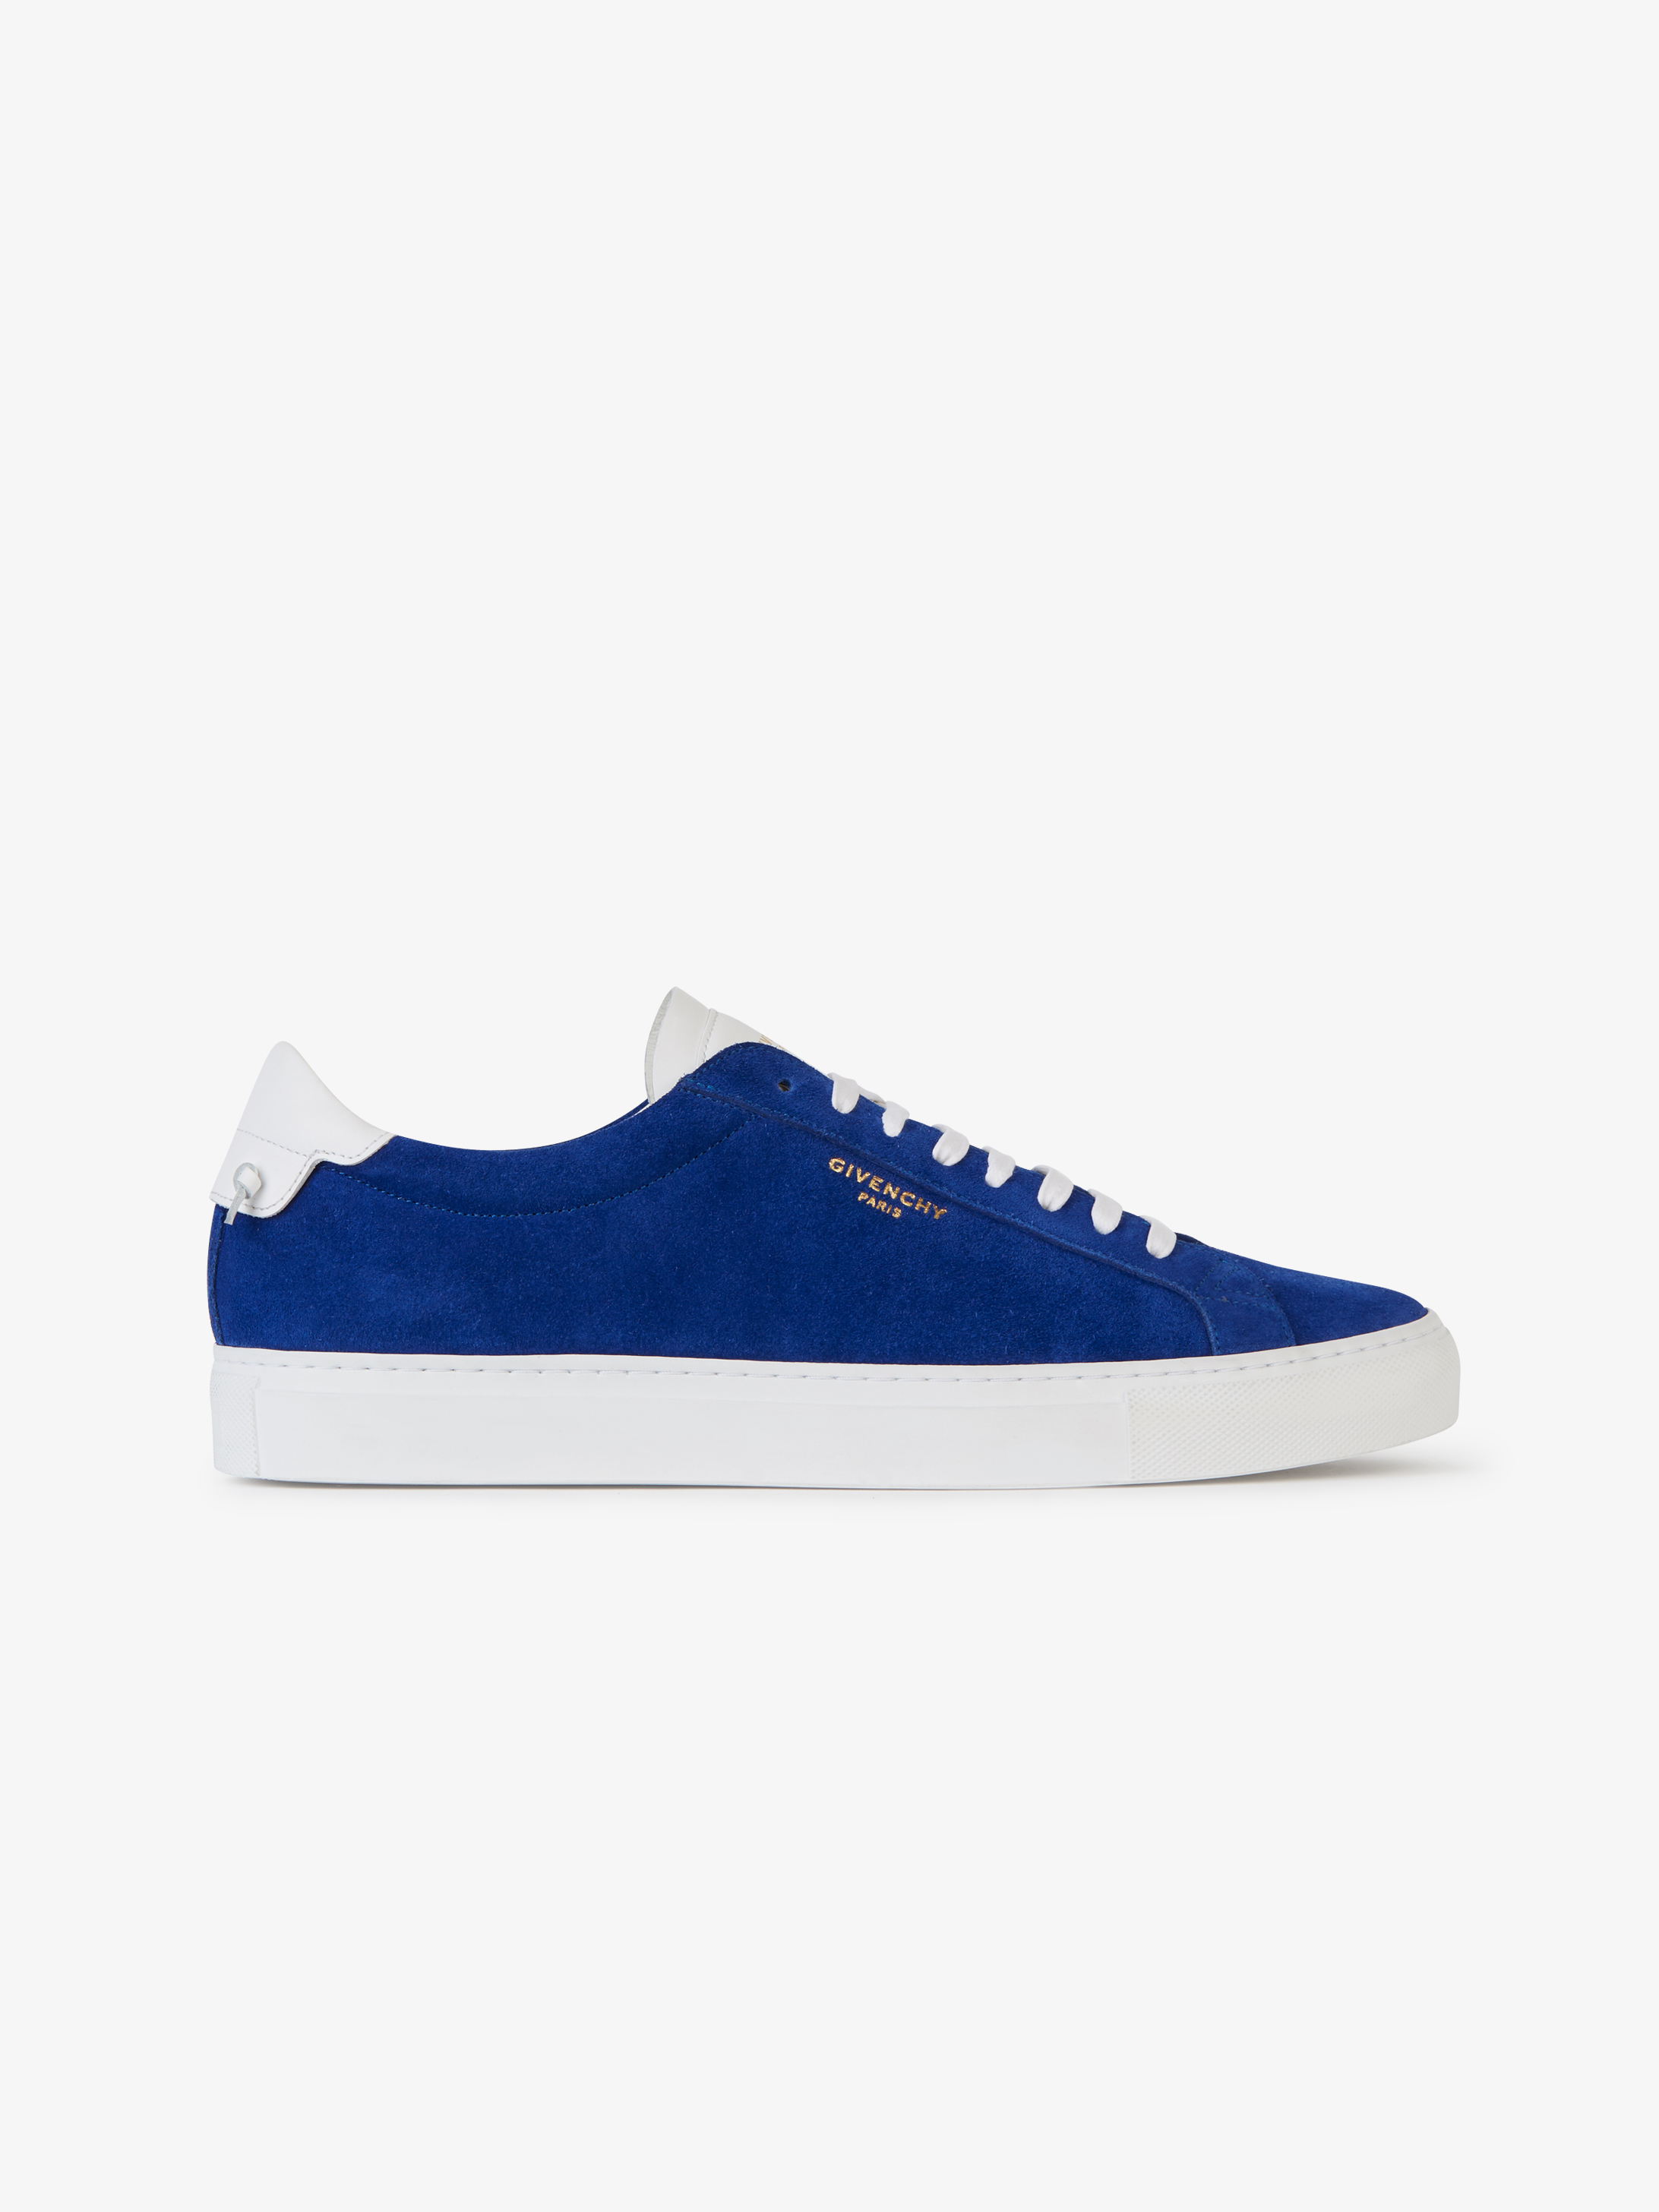 Low sneakers in bicolor suede